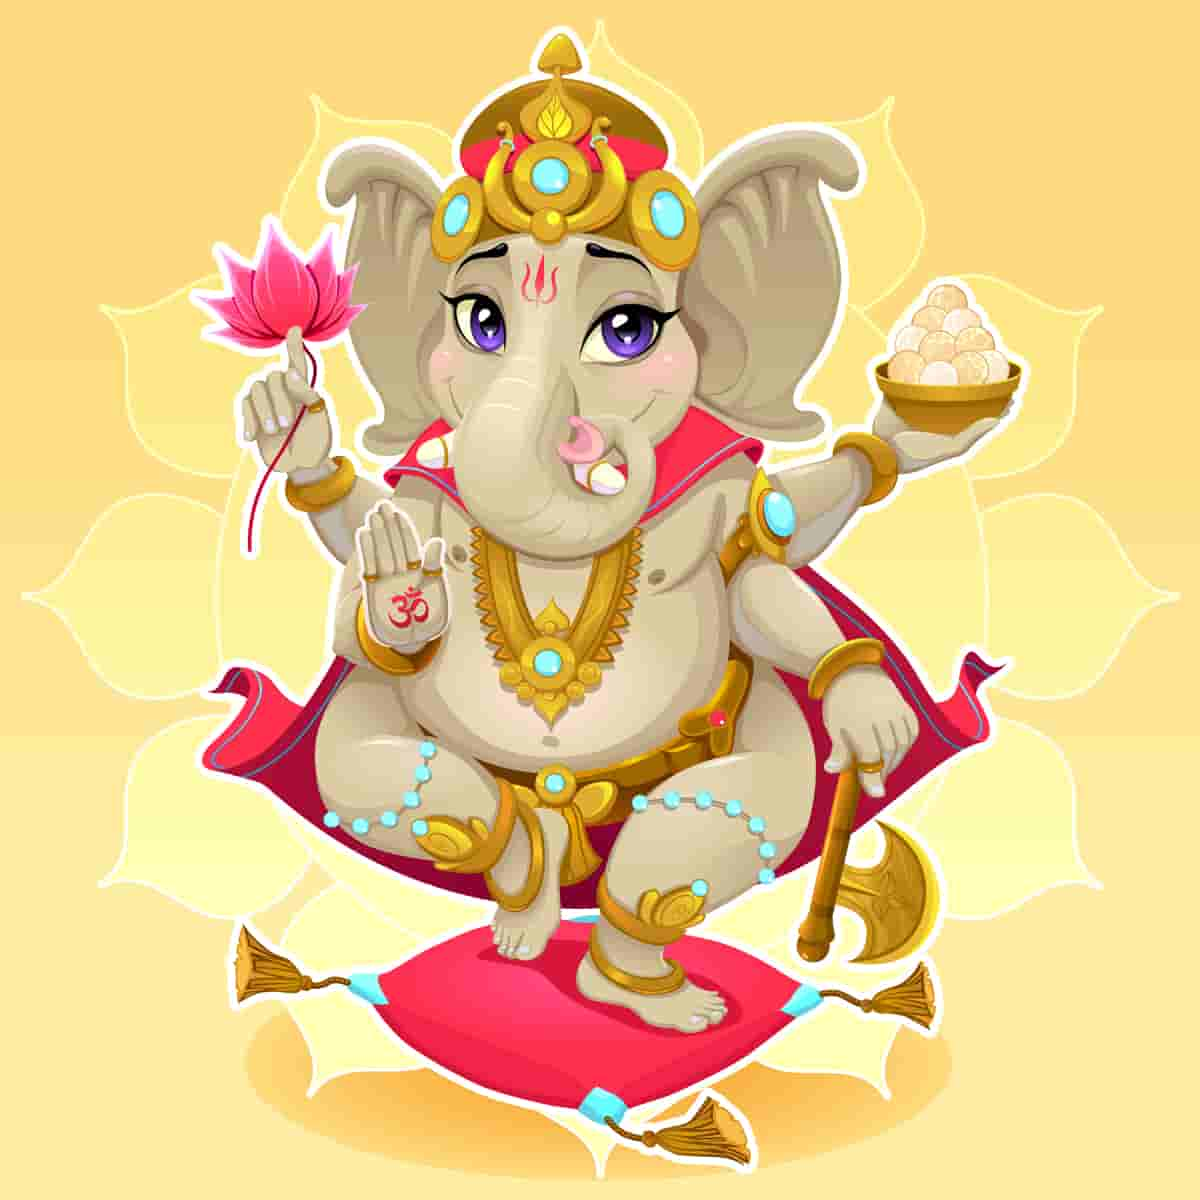 Ganesh Chaturthi - Fairs and Festivals Of India